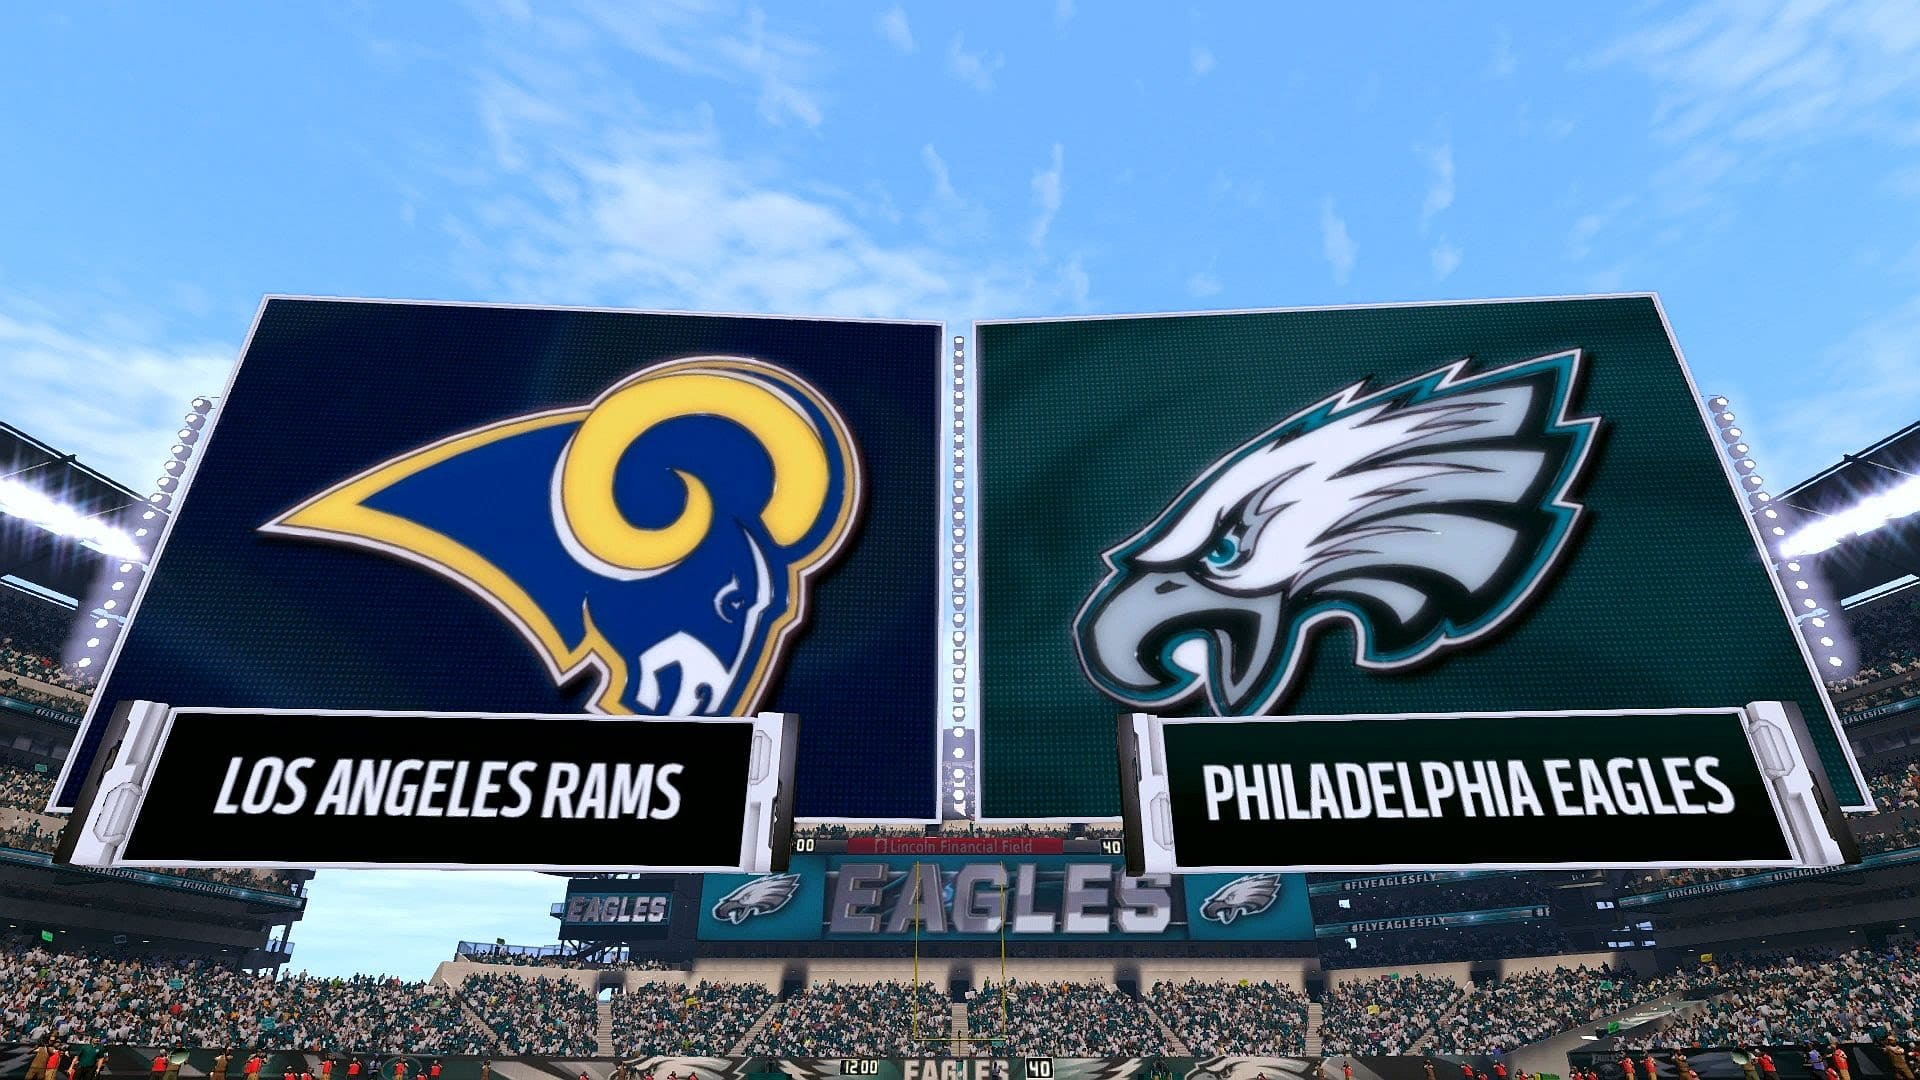 Eagles Vs Rams >> EAGLES HAVE EDGE ON RAMS DEFENSIVELY, ABOUT EVEN OFFENSIVELY!   Fast Philly Sports